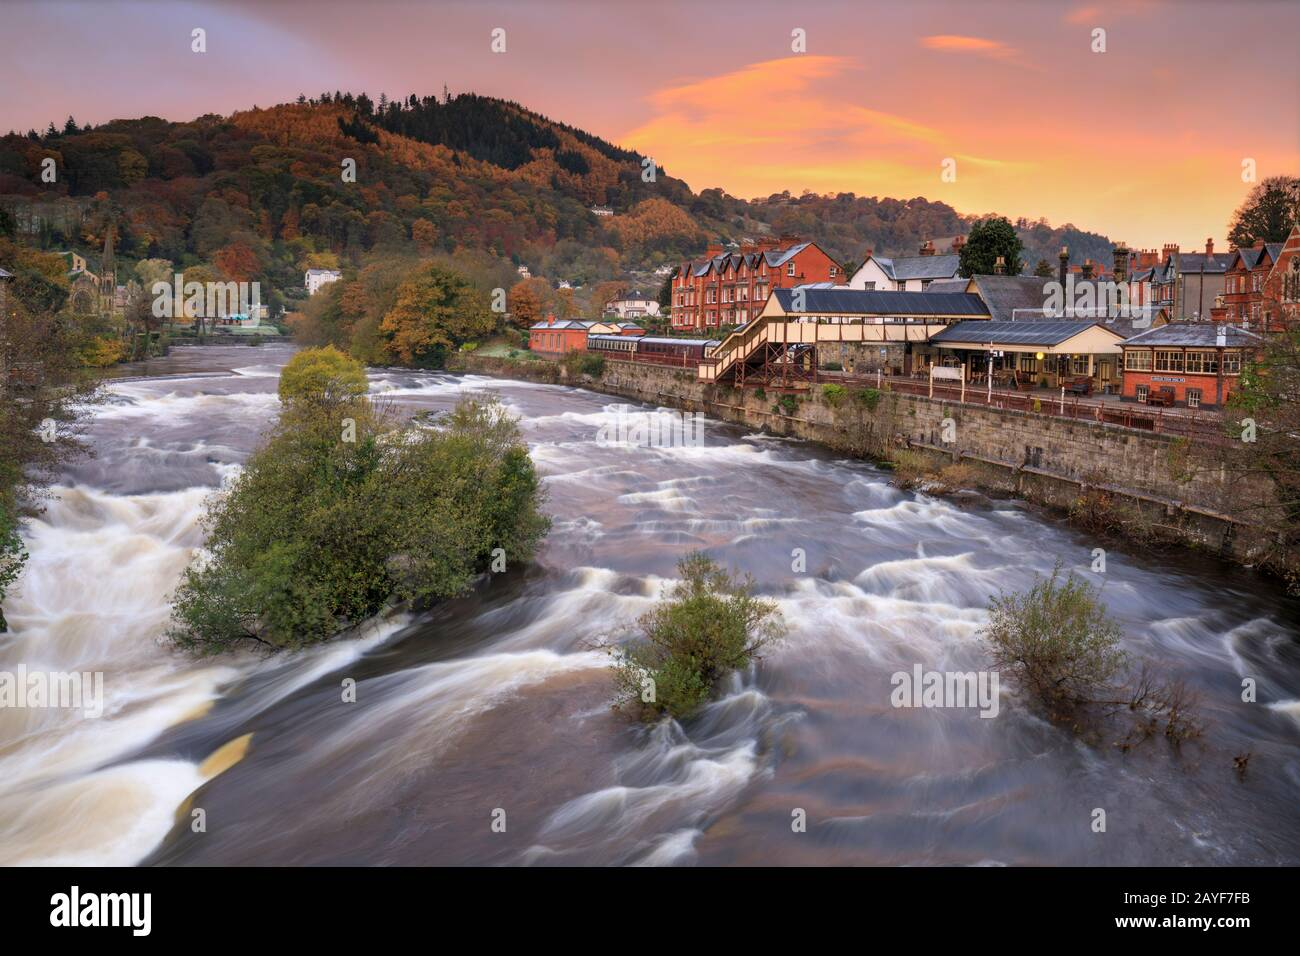 The River Dee at Llangollen captured at sunrise. Stock Photo